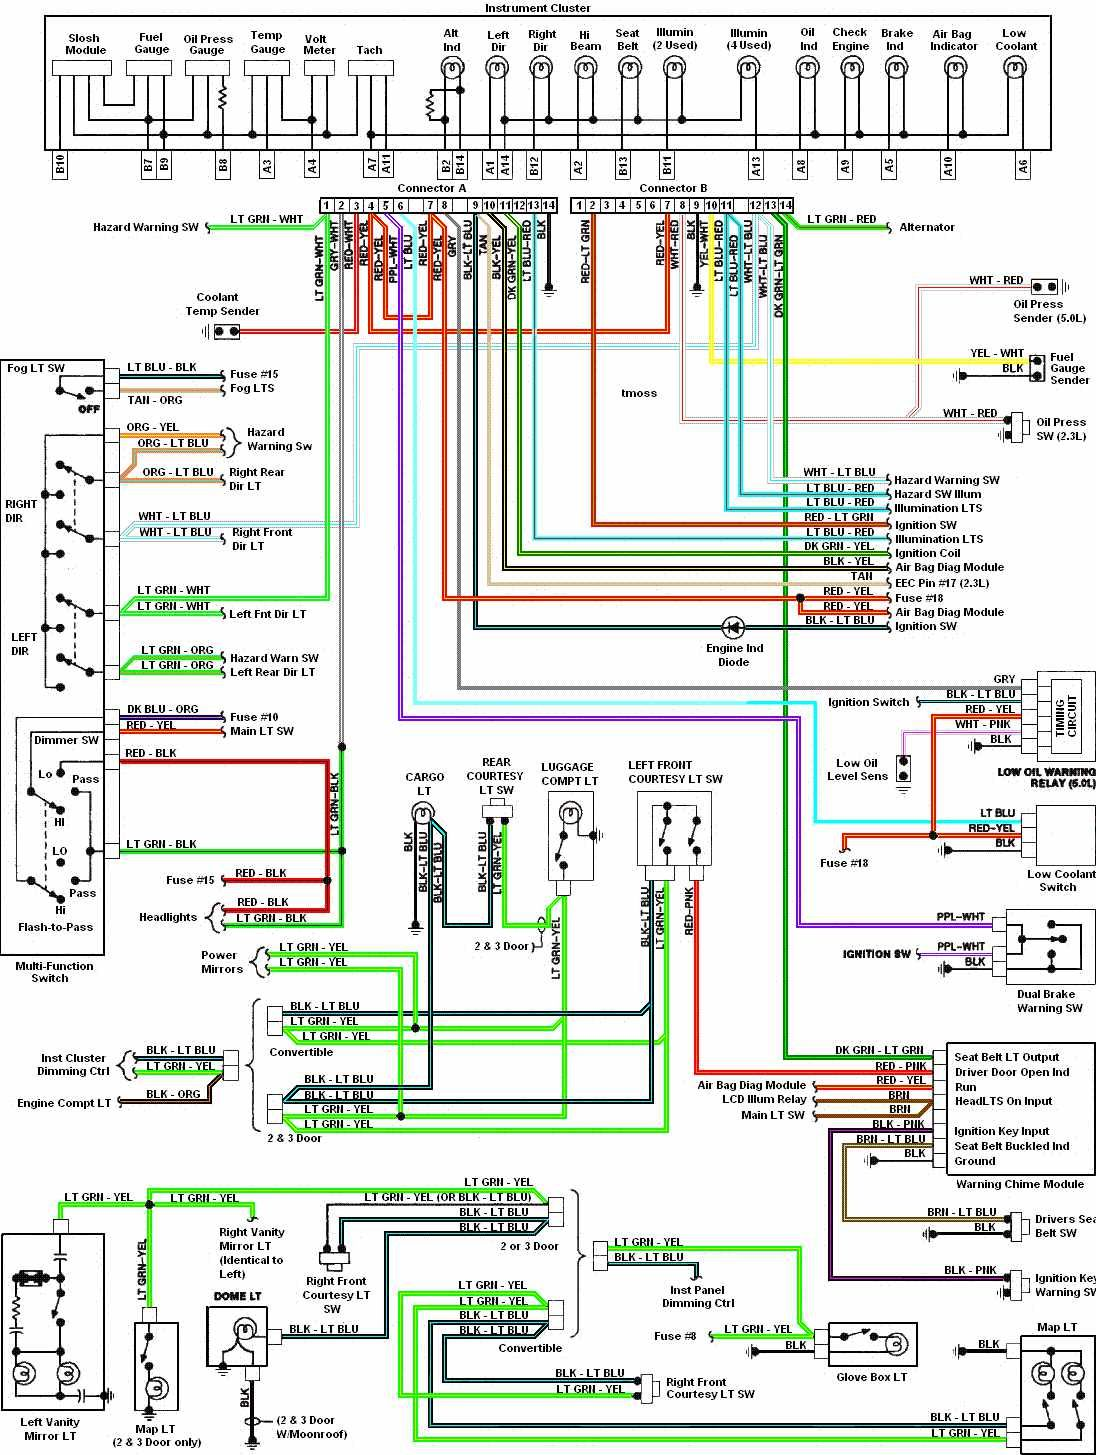 1993 Ford Mustang Wiring Diagram Pinterest French House